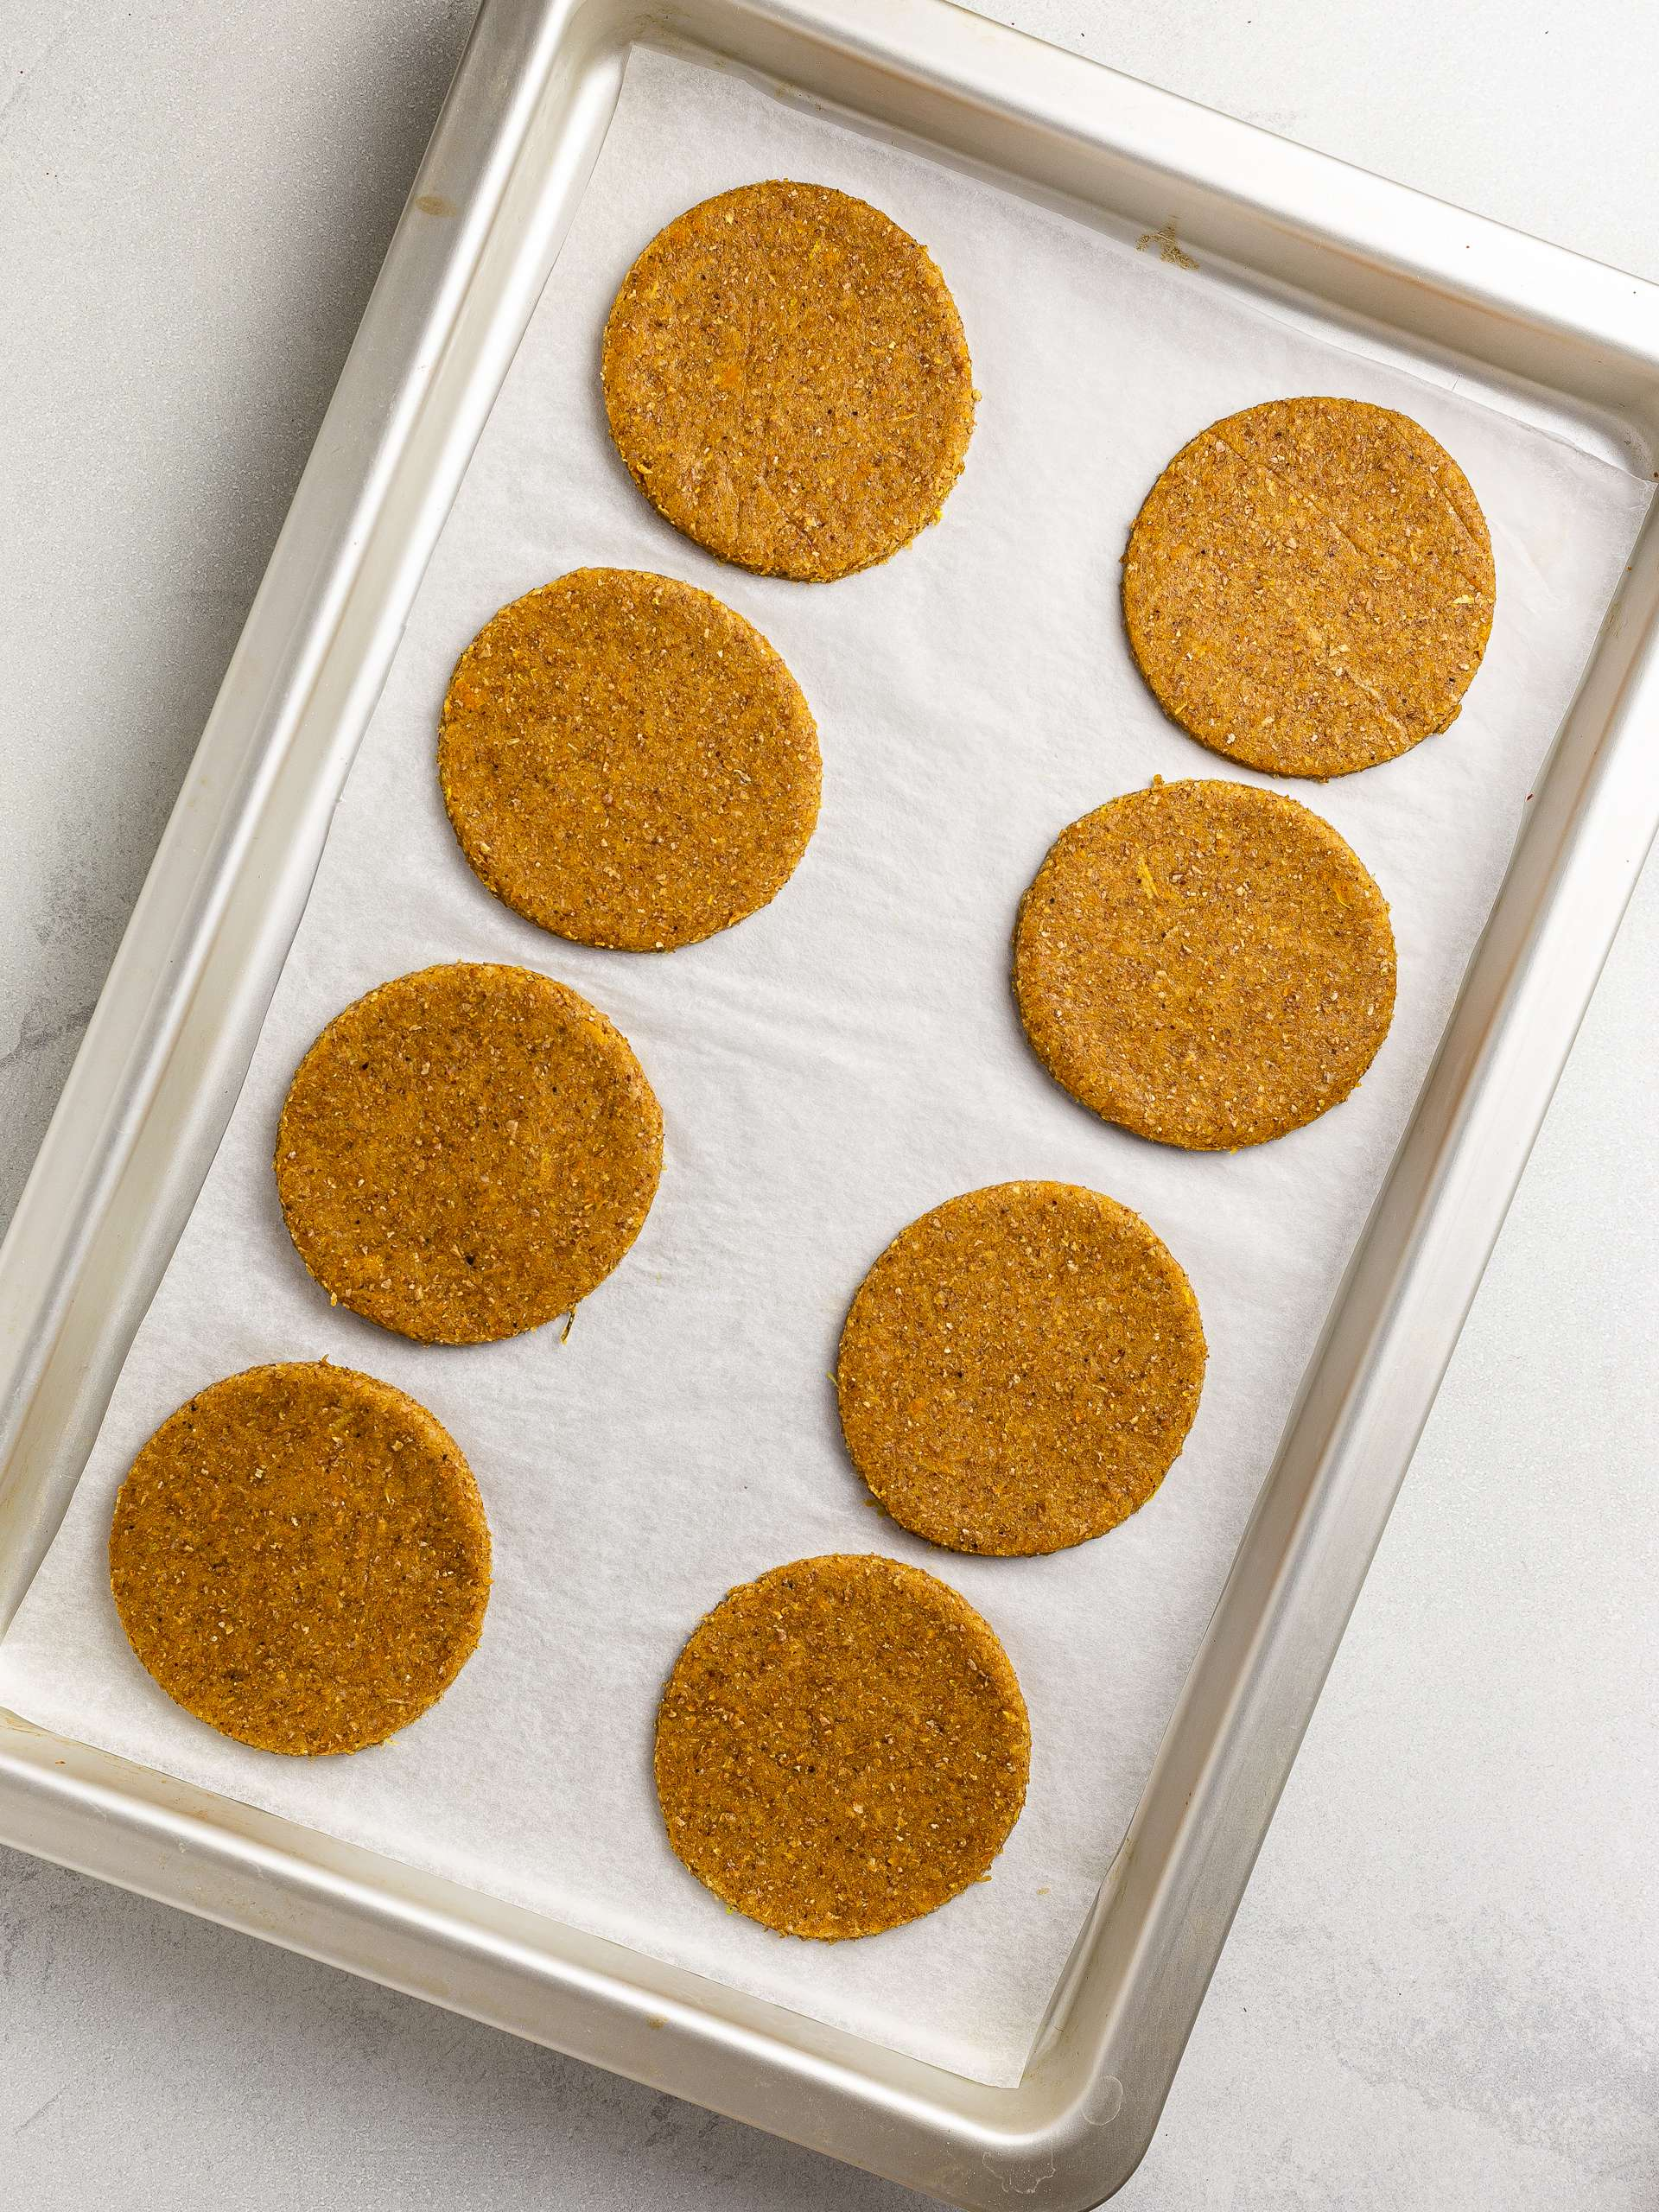 butternut squash cookies on a baking tray